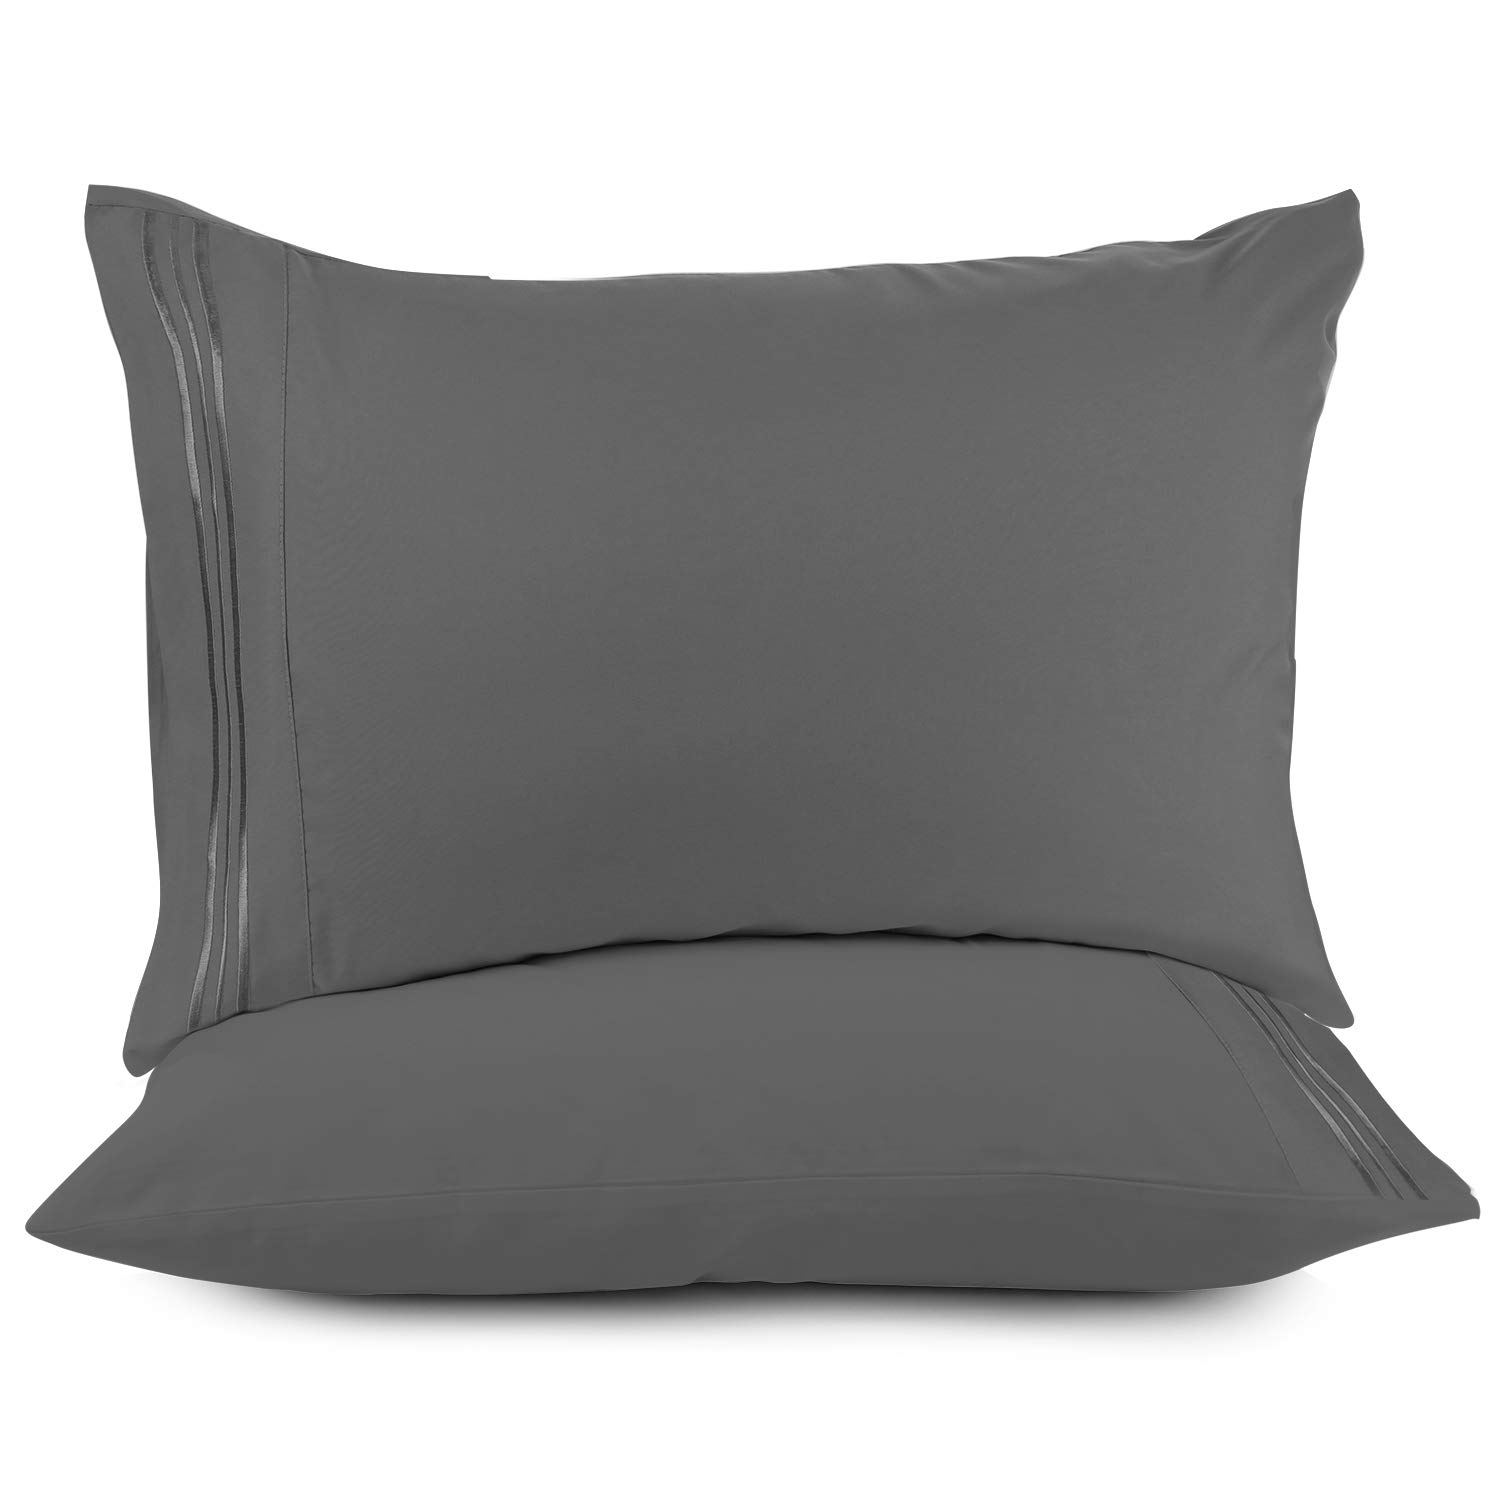 Nestl Bedding Solid Microfiber King 20 x 40 Inches Pillowcases, Charcoal Grey (Set of 2)